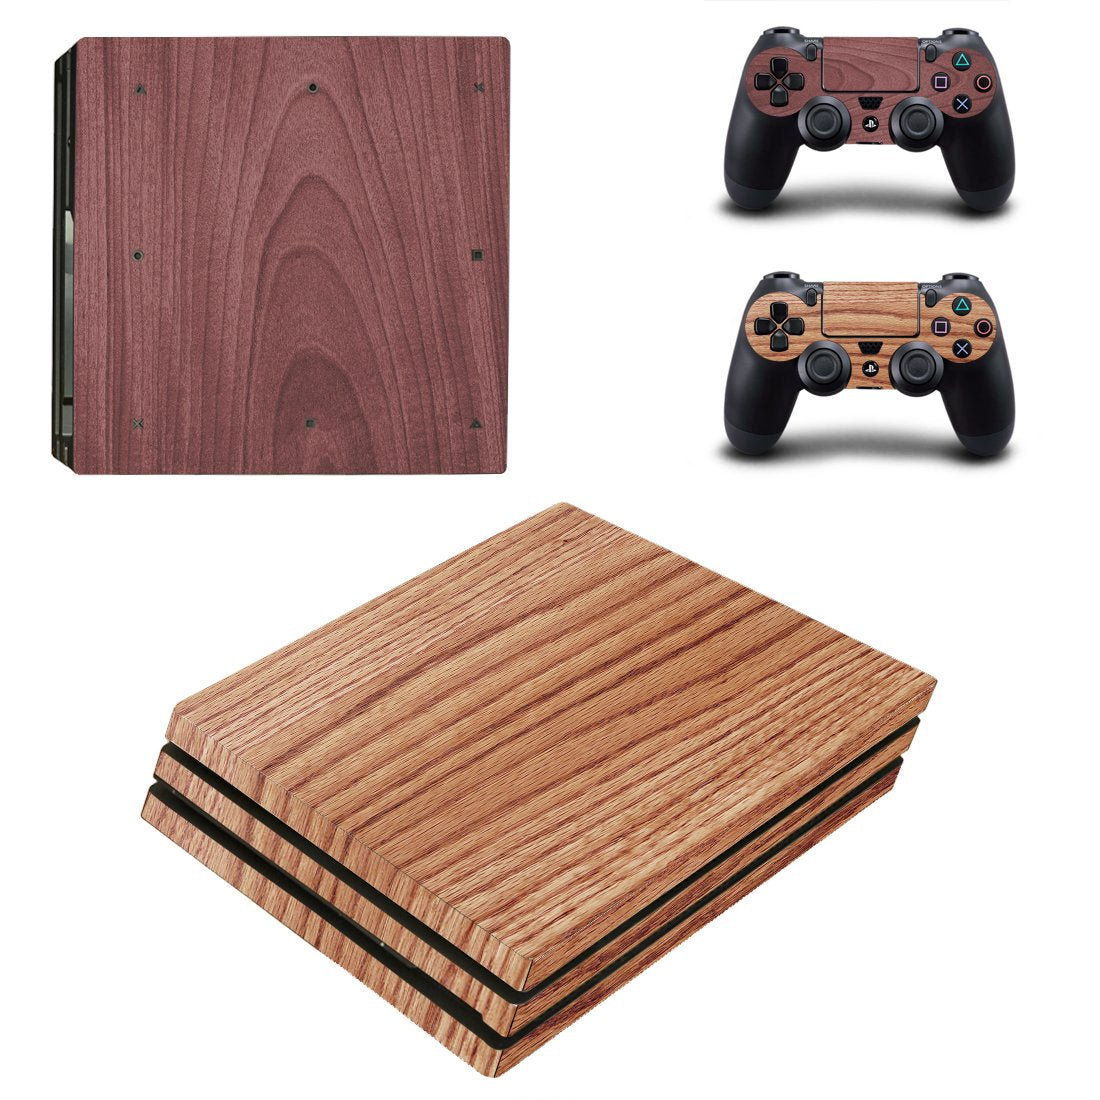 Wood PS4 Pro Skin Sticker Wrap